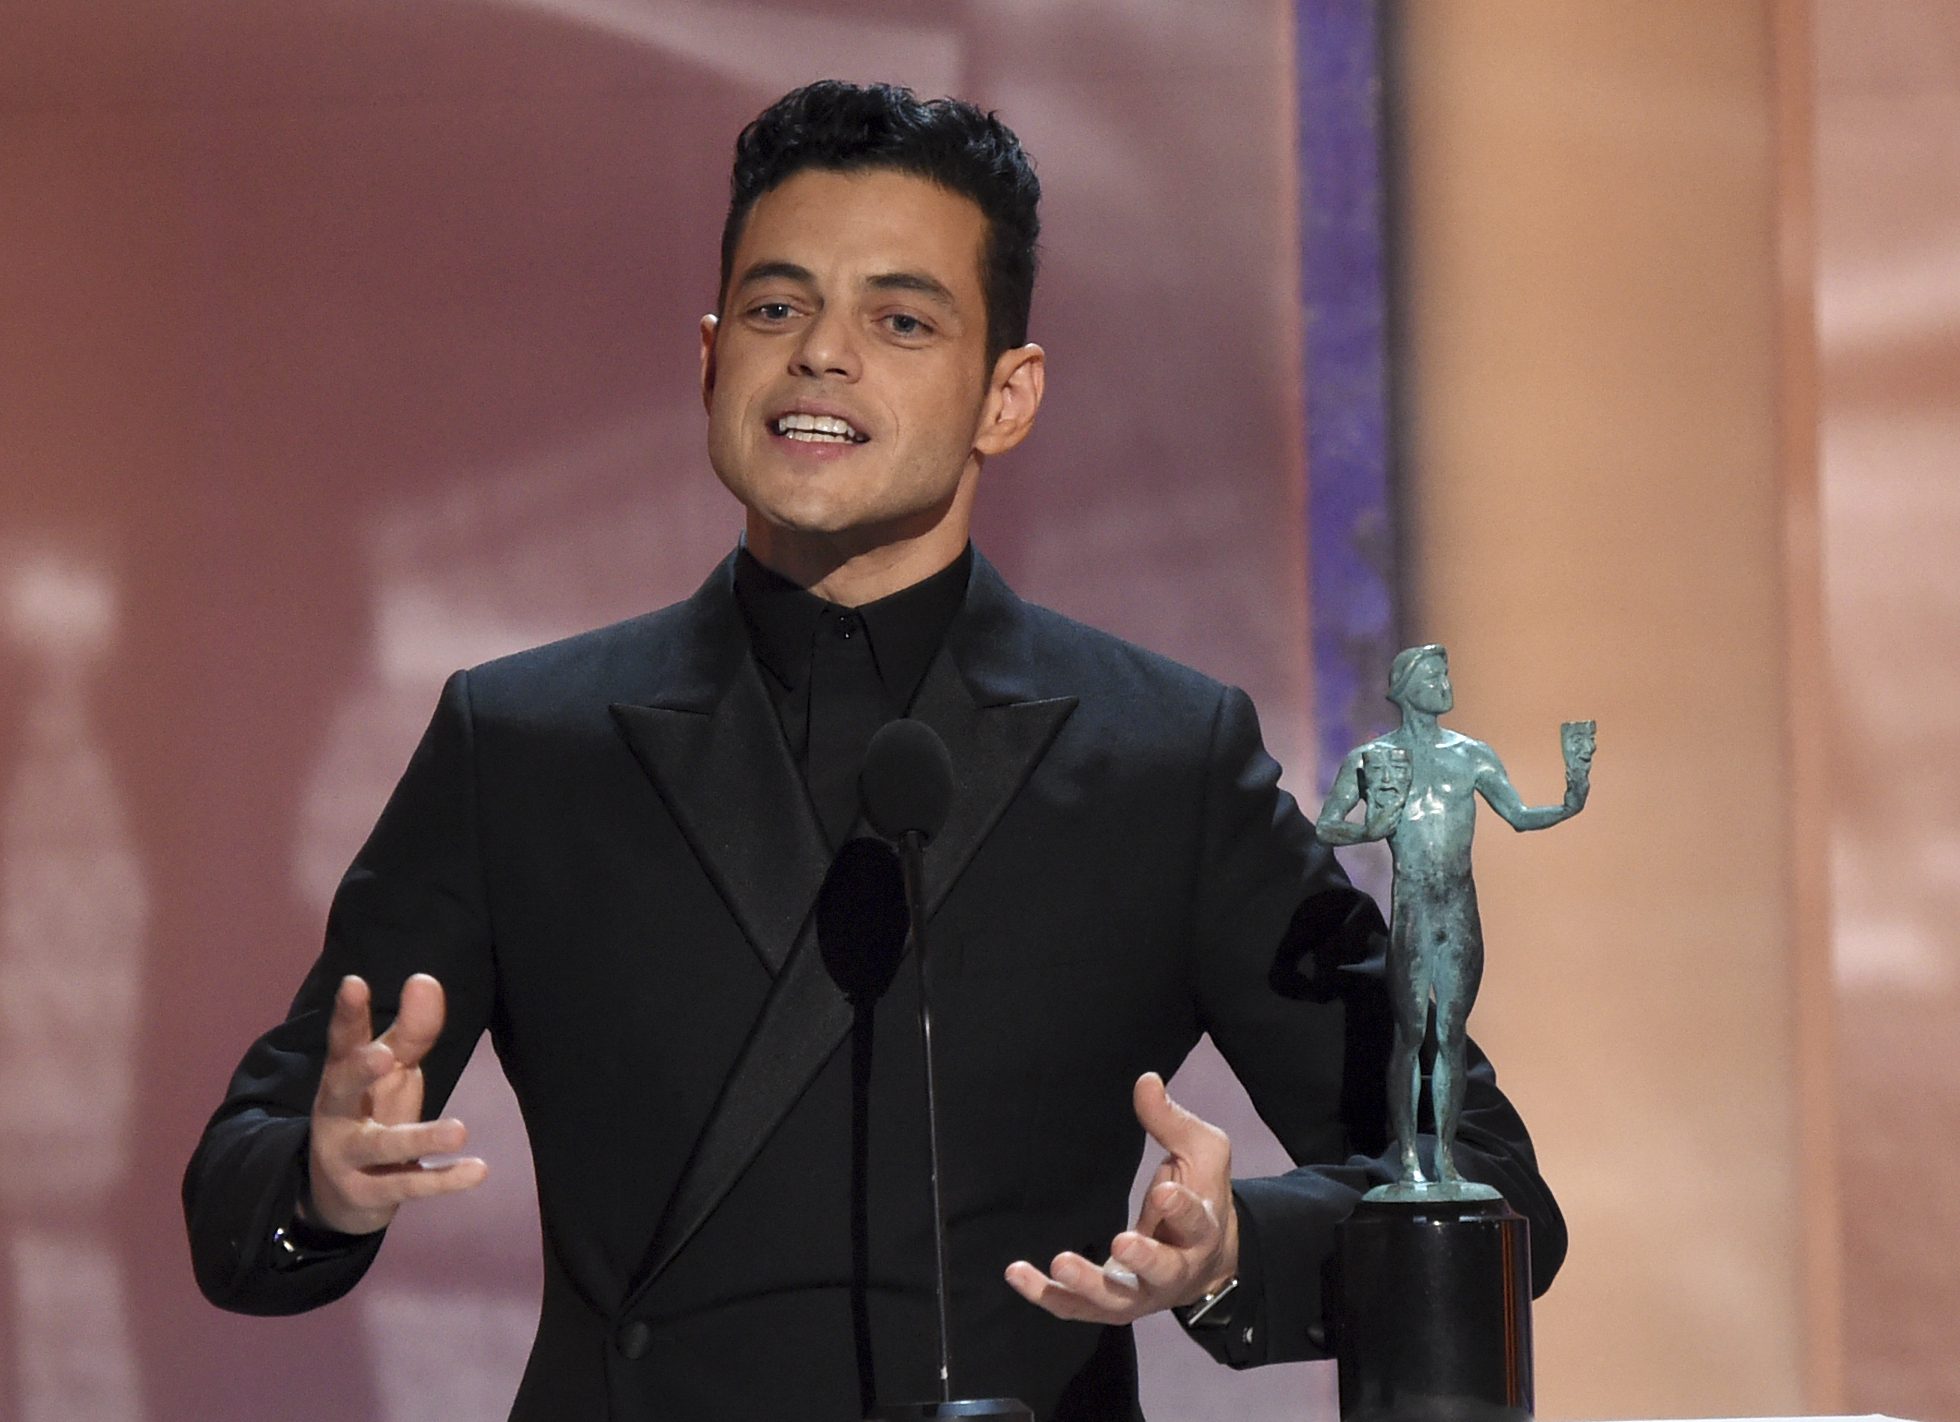 Rami Malek accepts the award for outstanding performance by a male actor in a leading role for